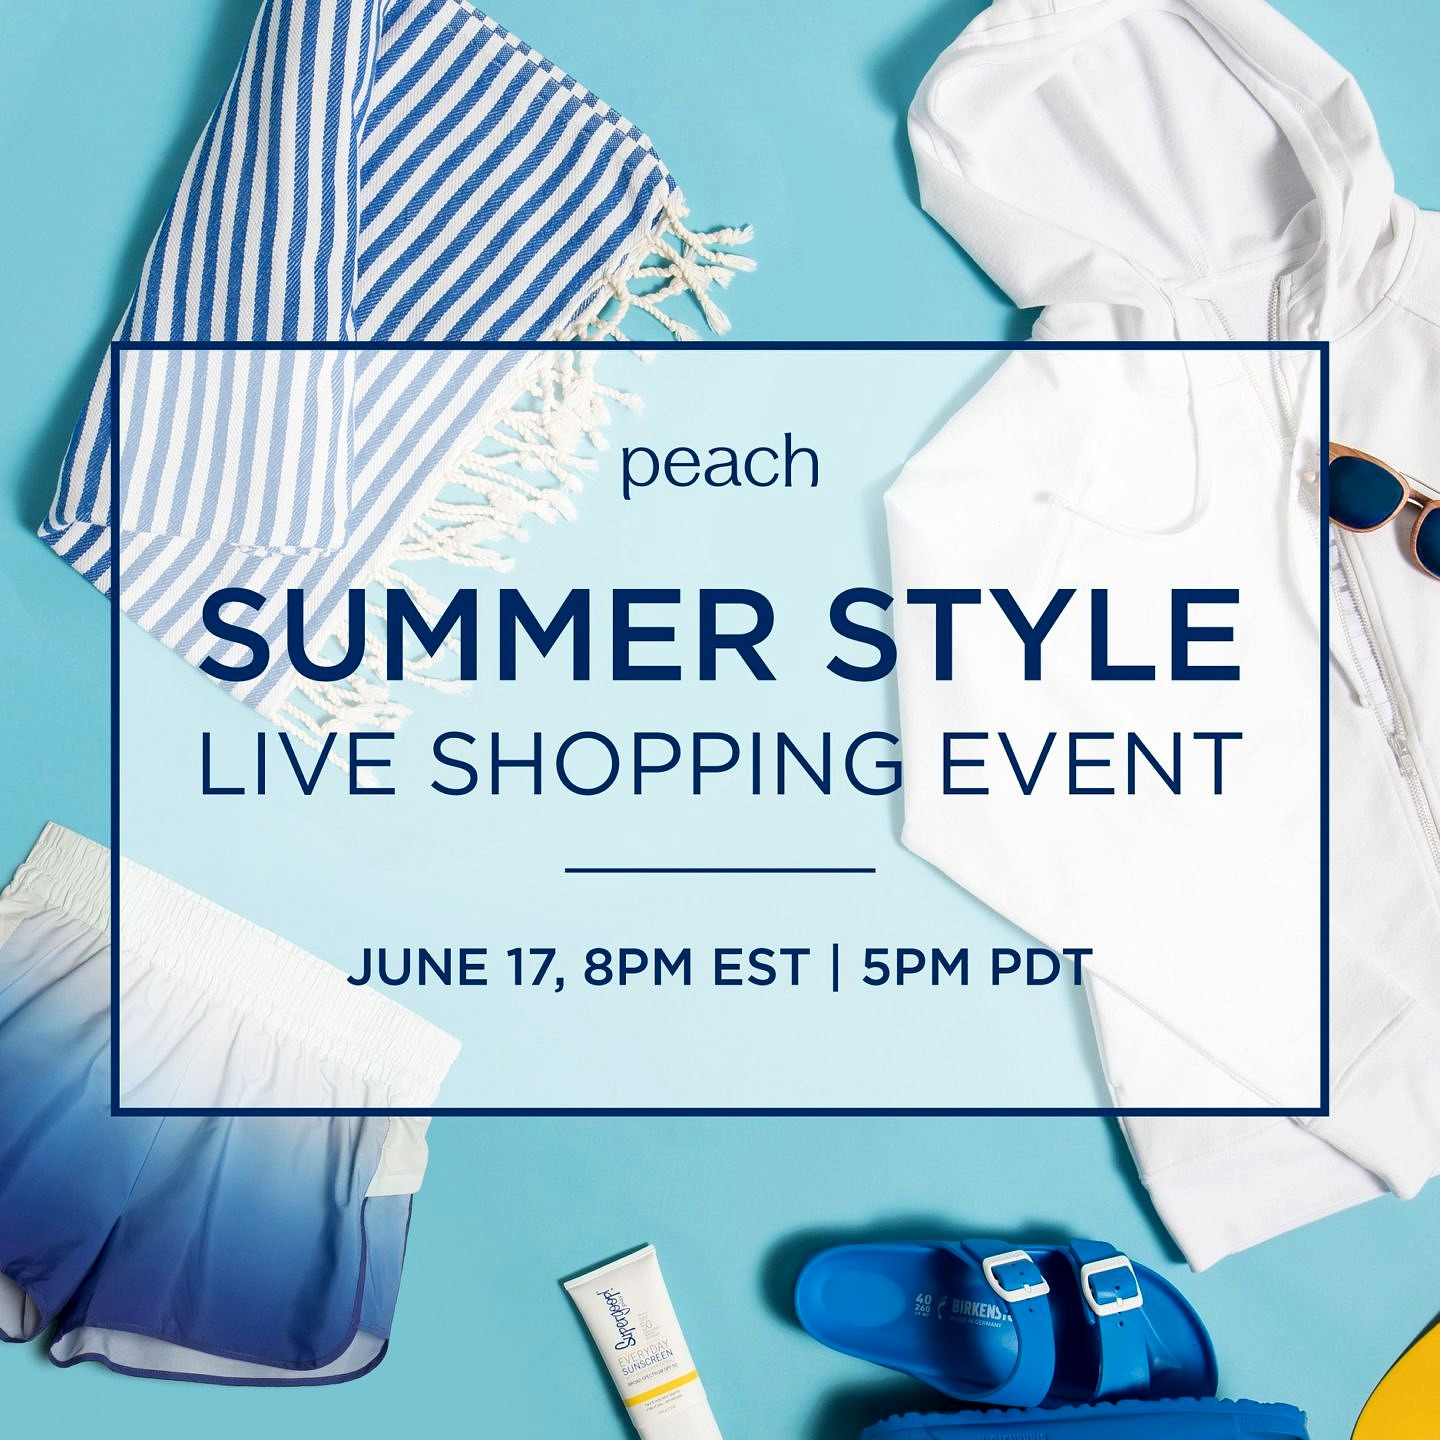 Peach Summer Style Live Shopping Event